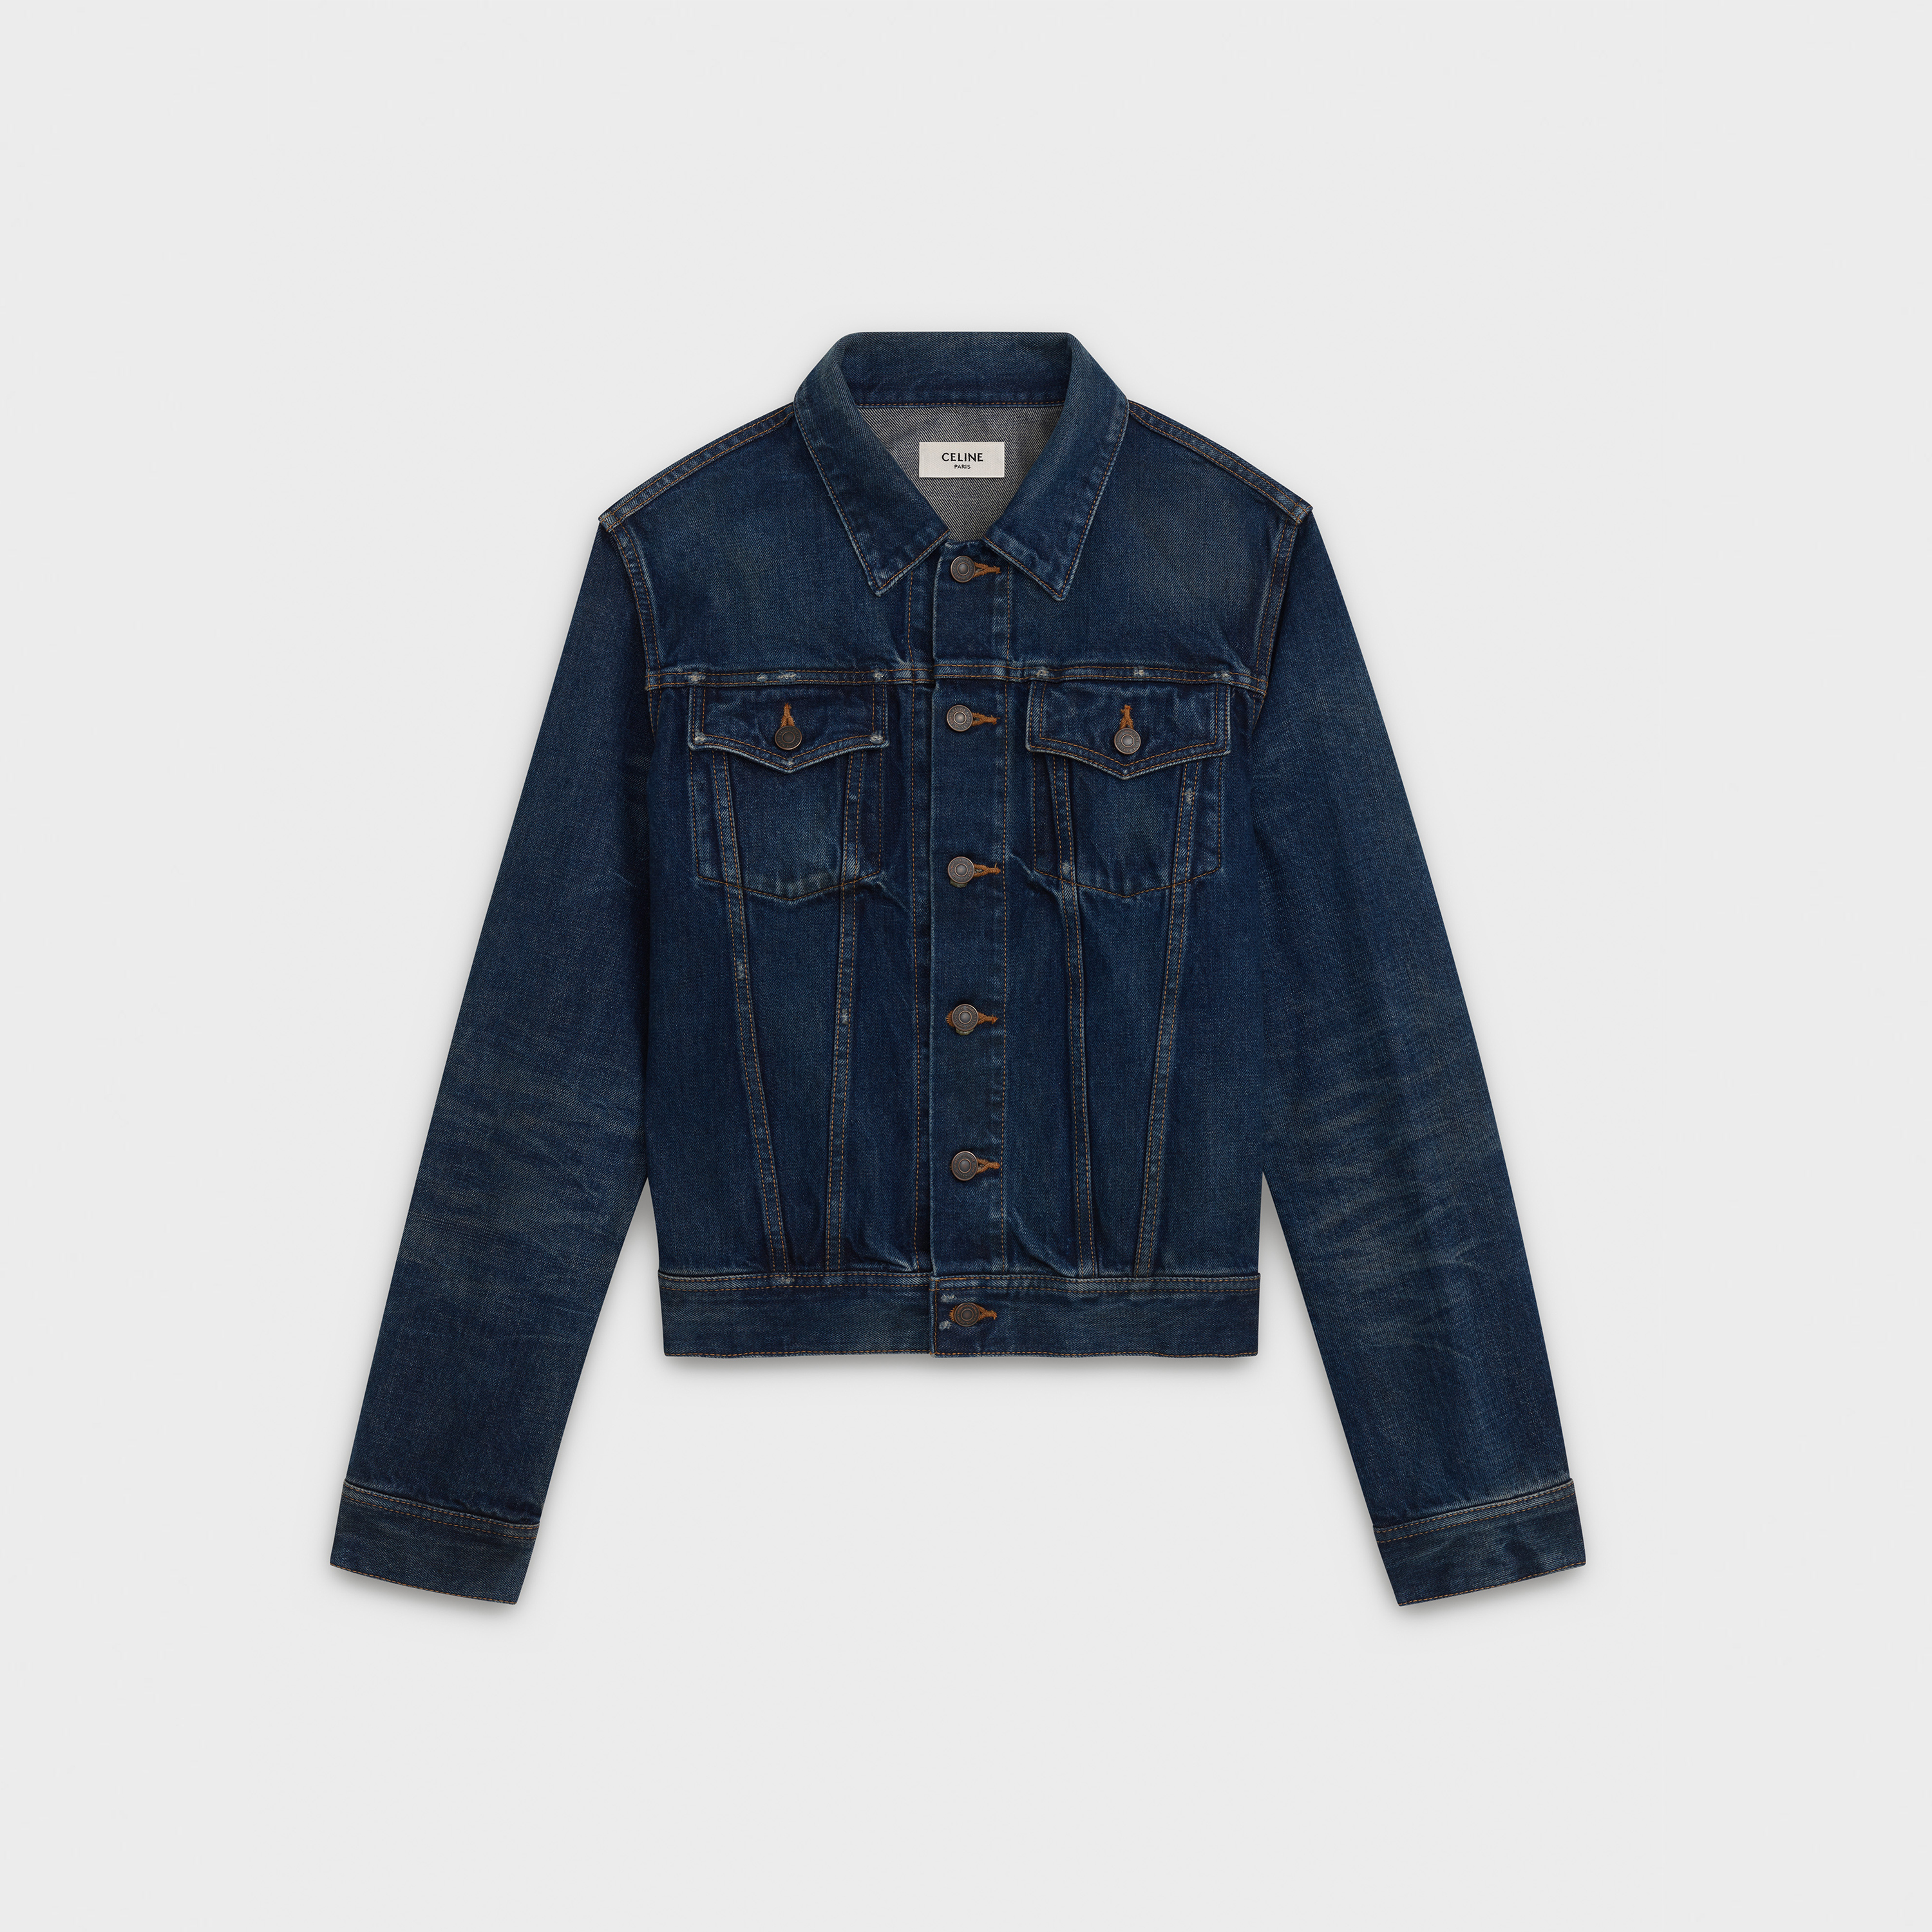 classic trucker jacket in denim | CELINE